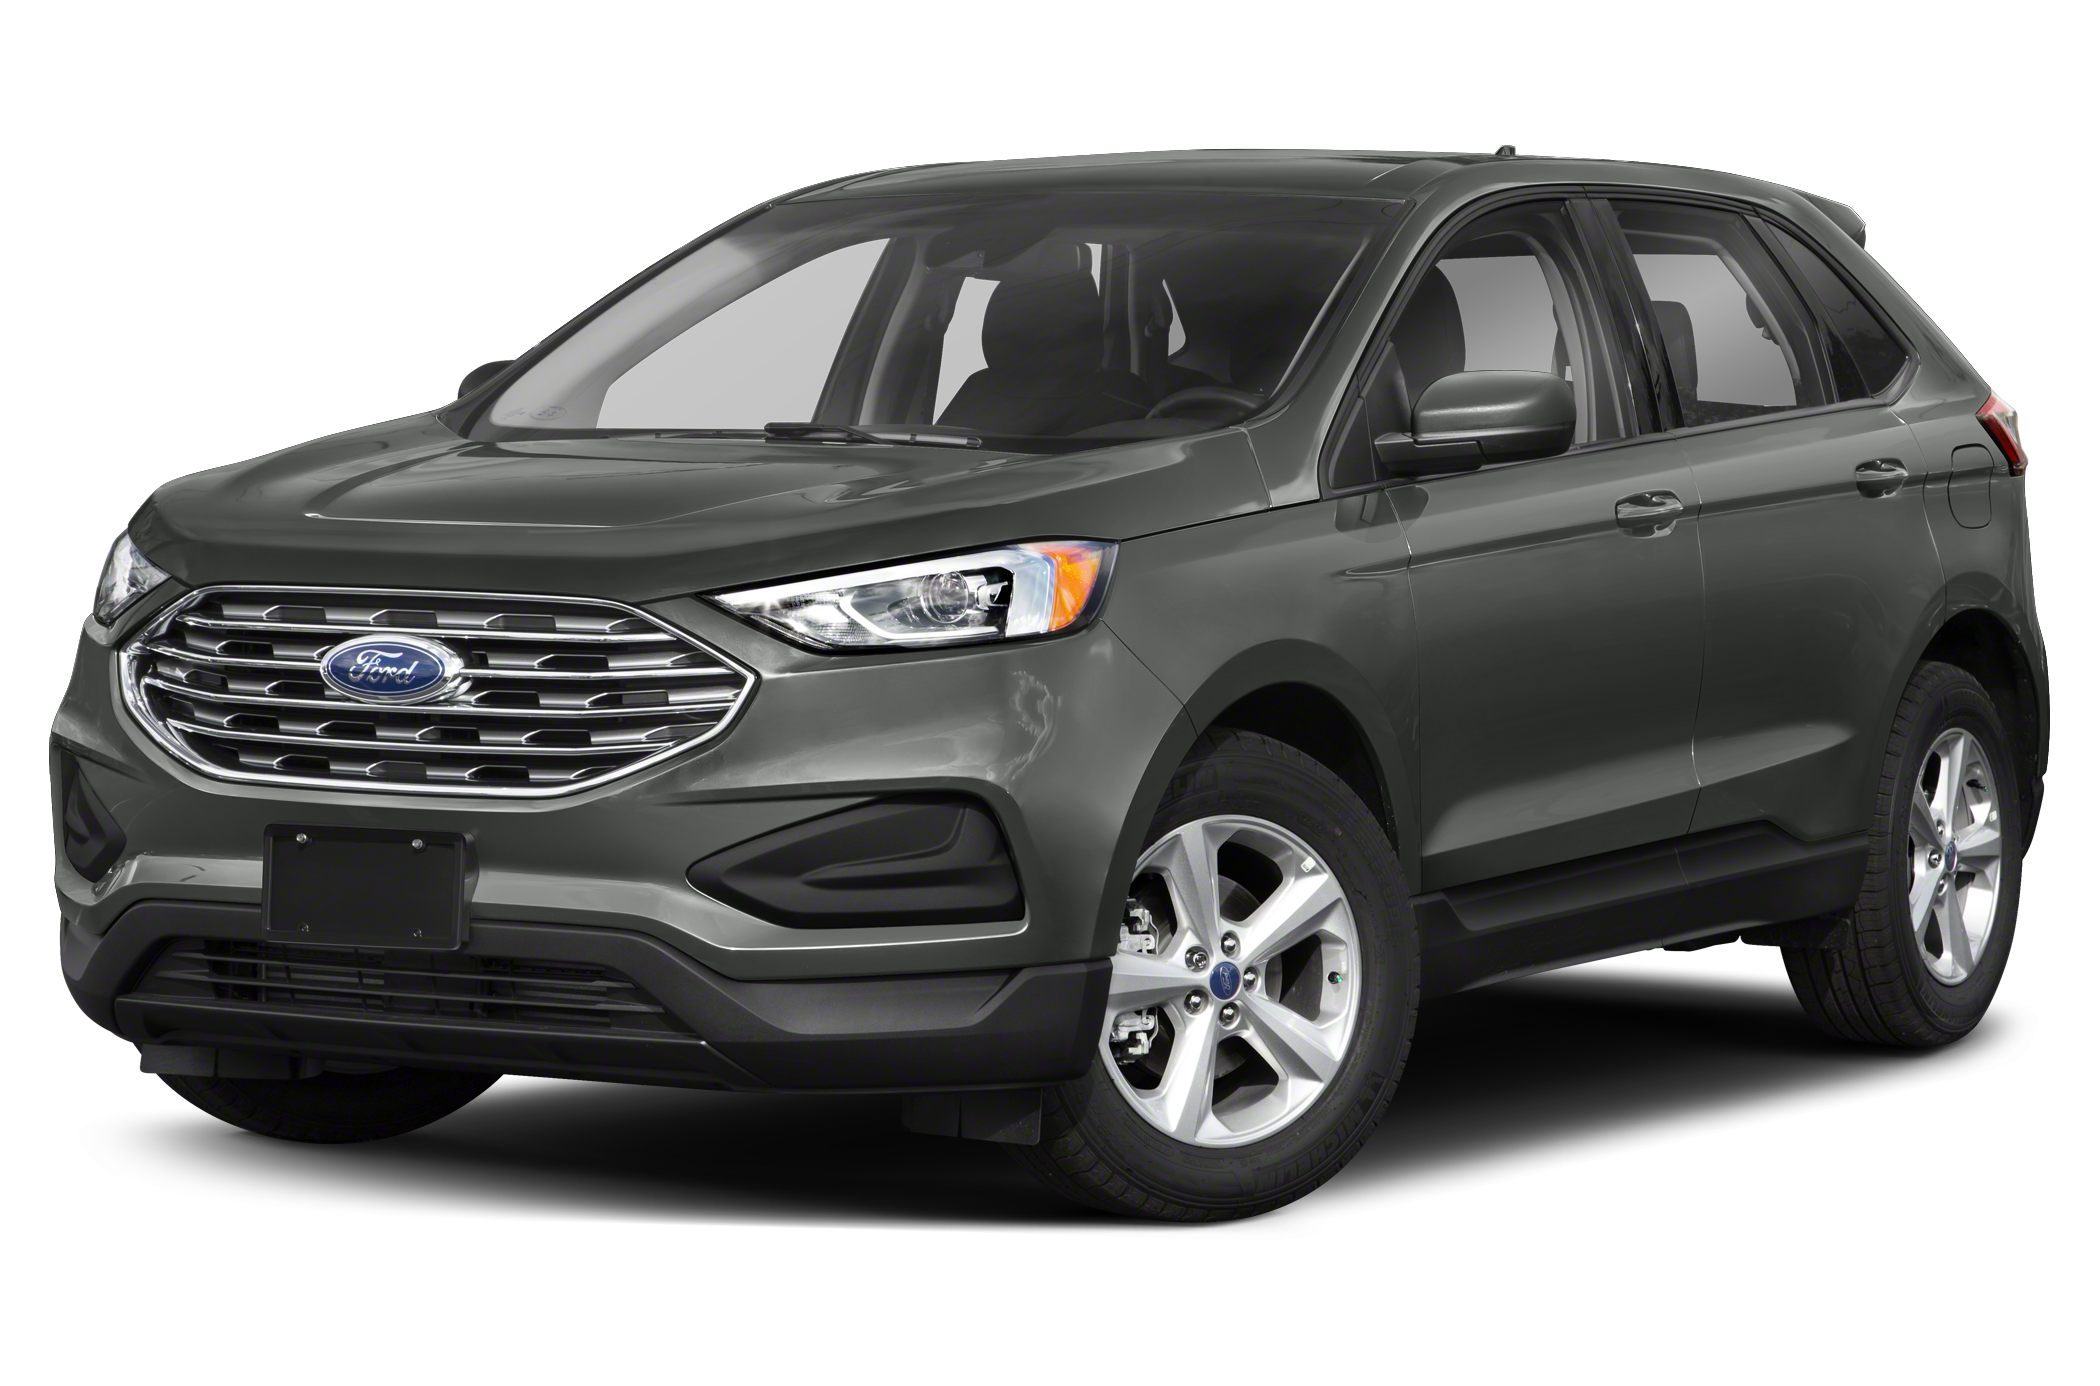 2020 Ford Edge MPG Price Reviews Photos NewCars